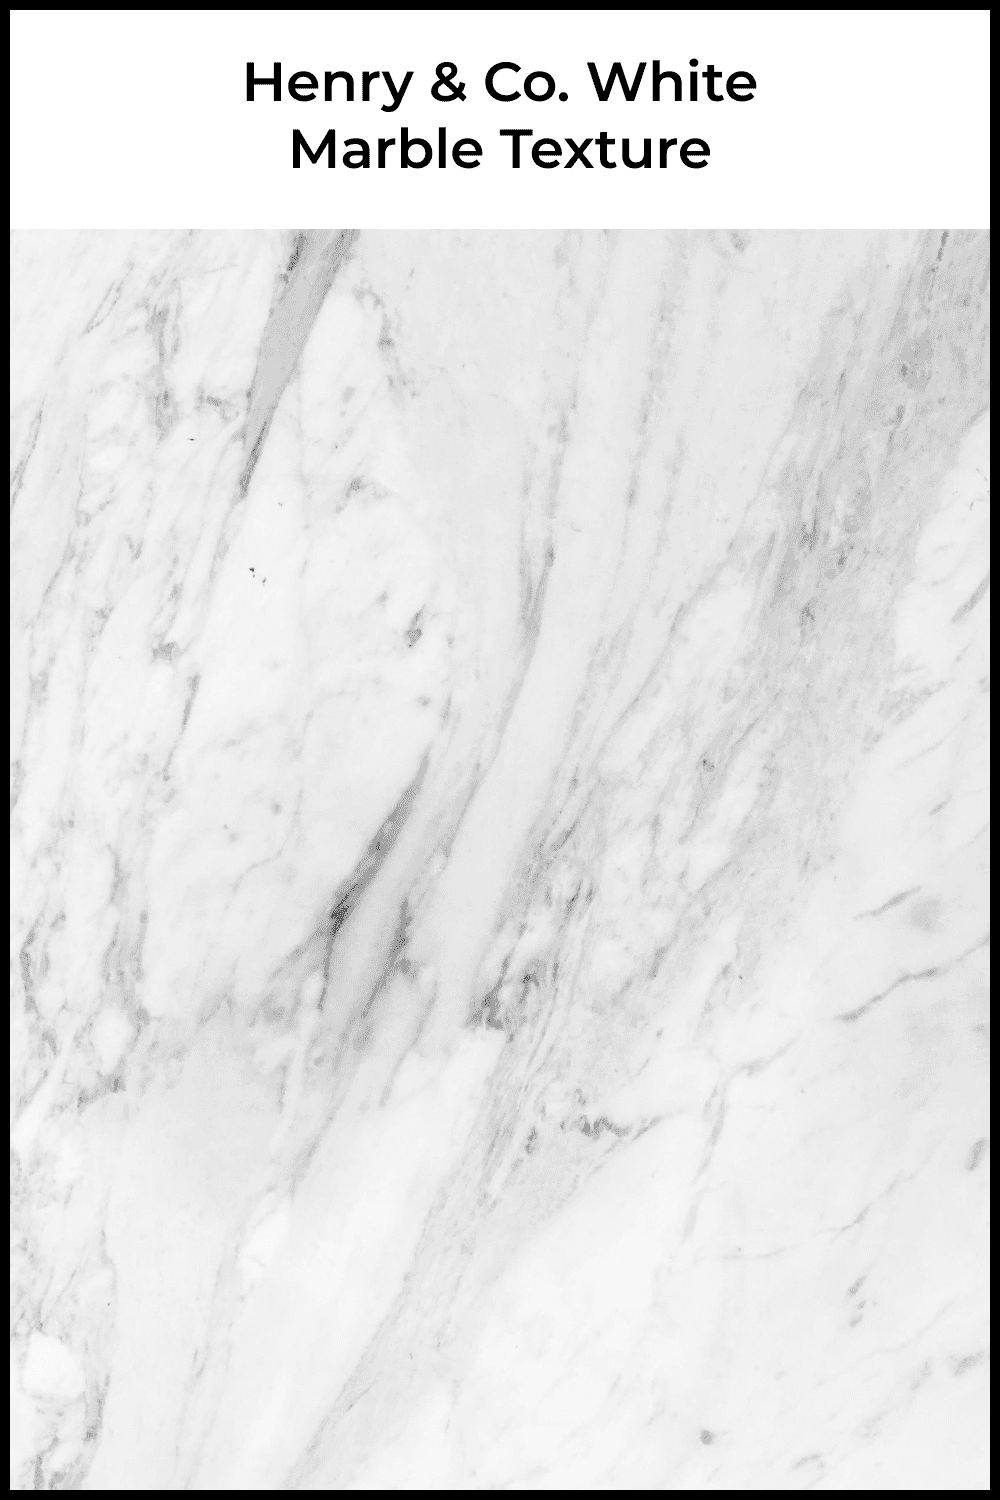 Henry & Co. white marble texture.